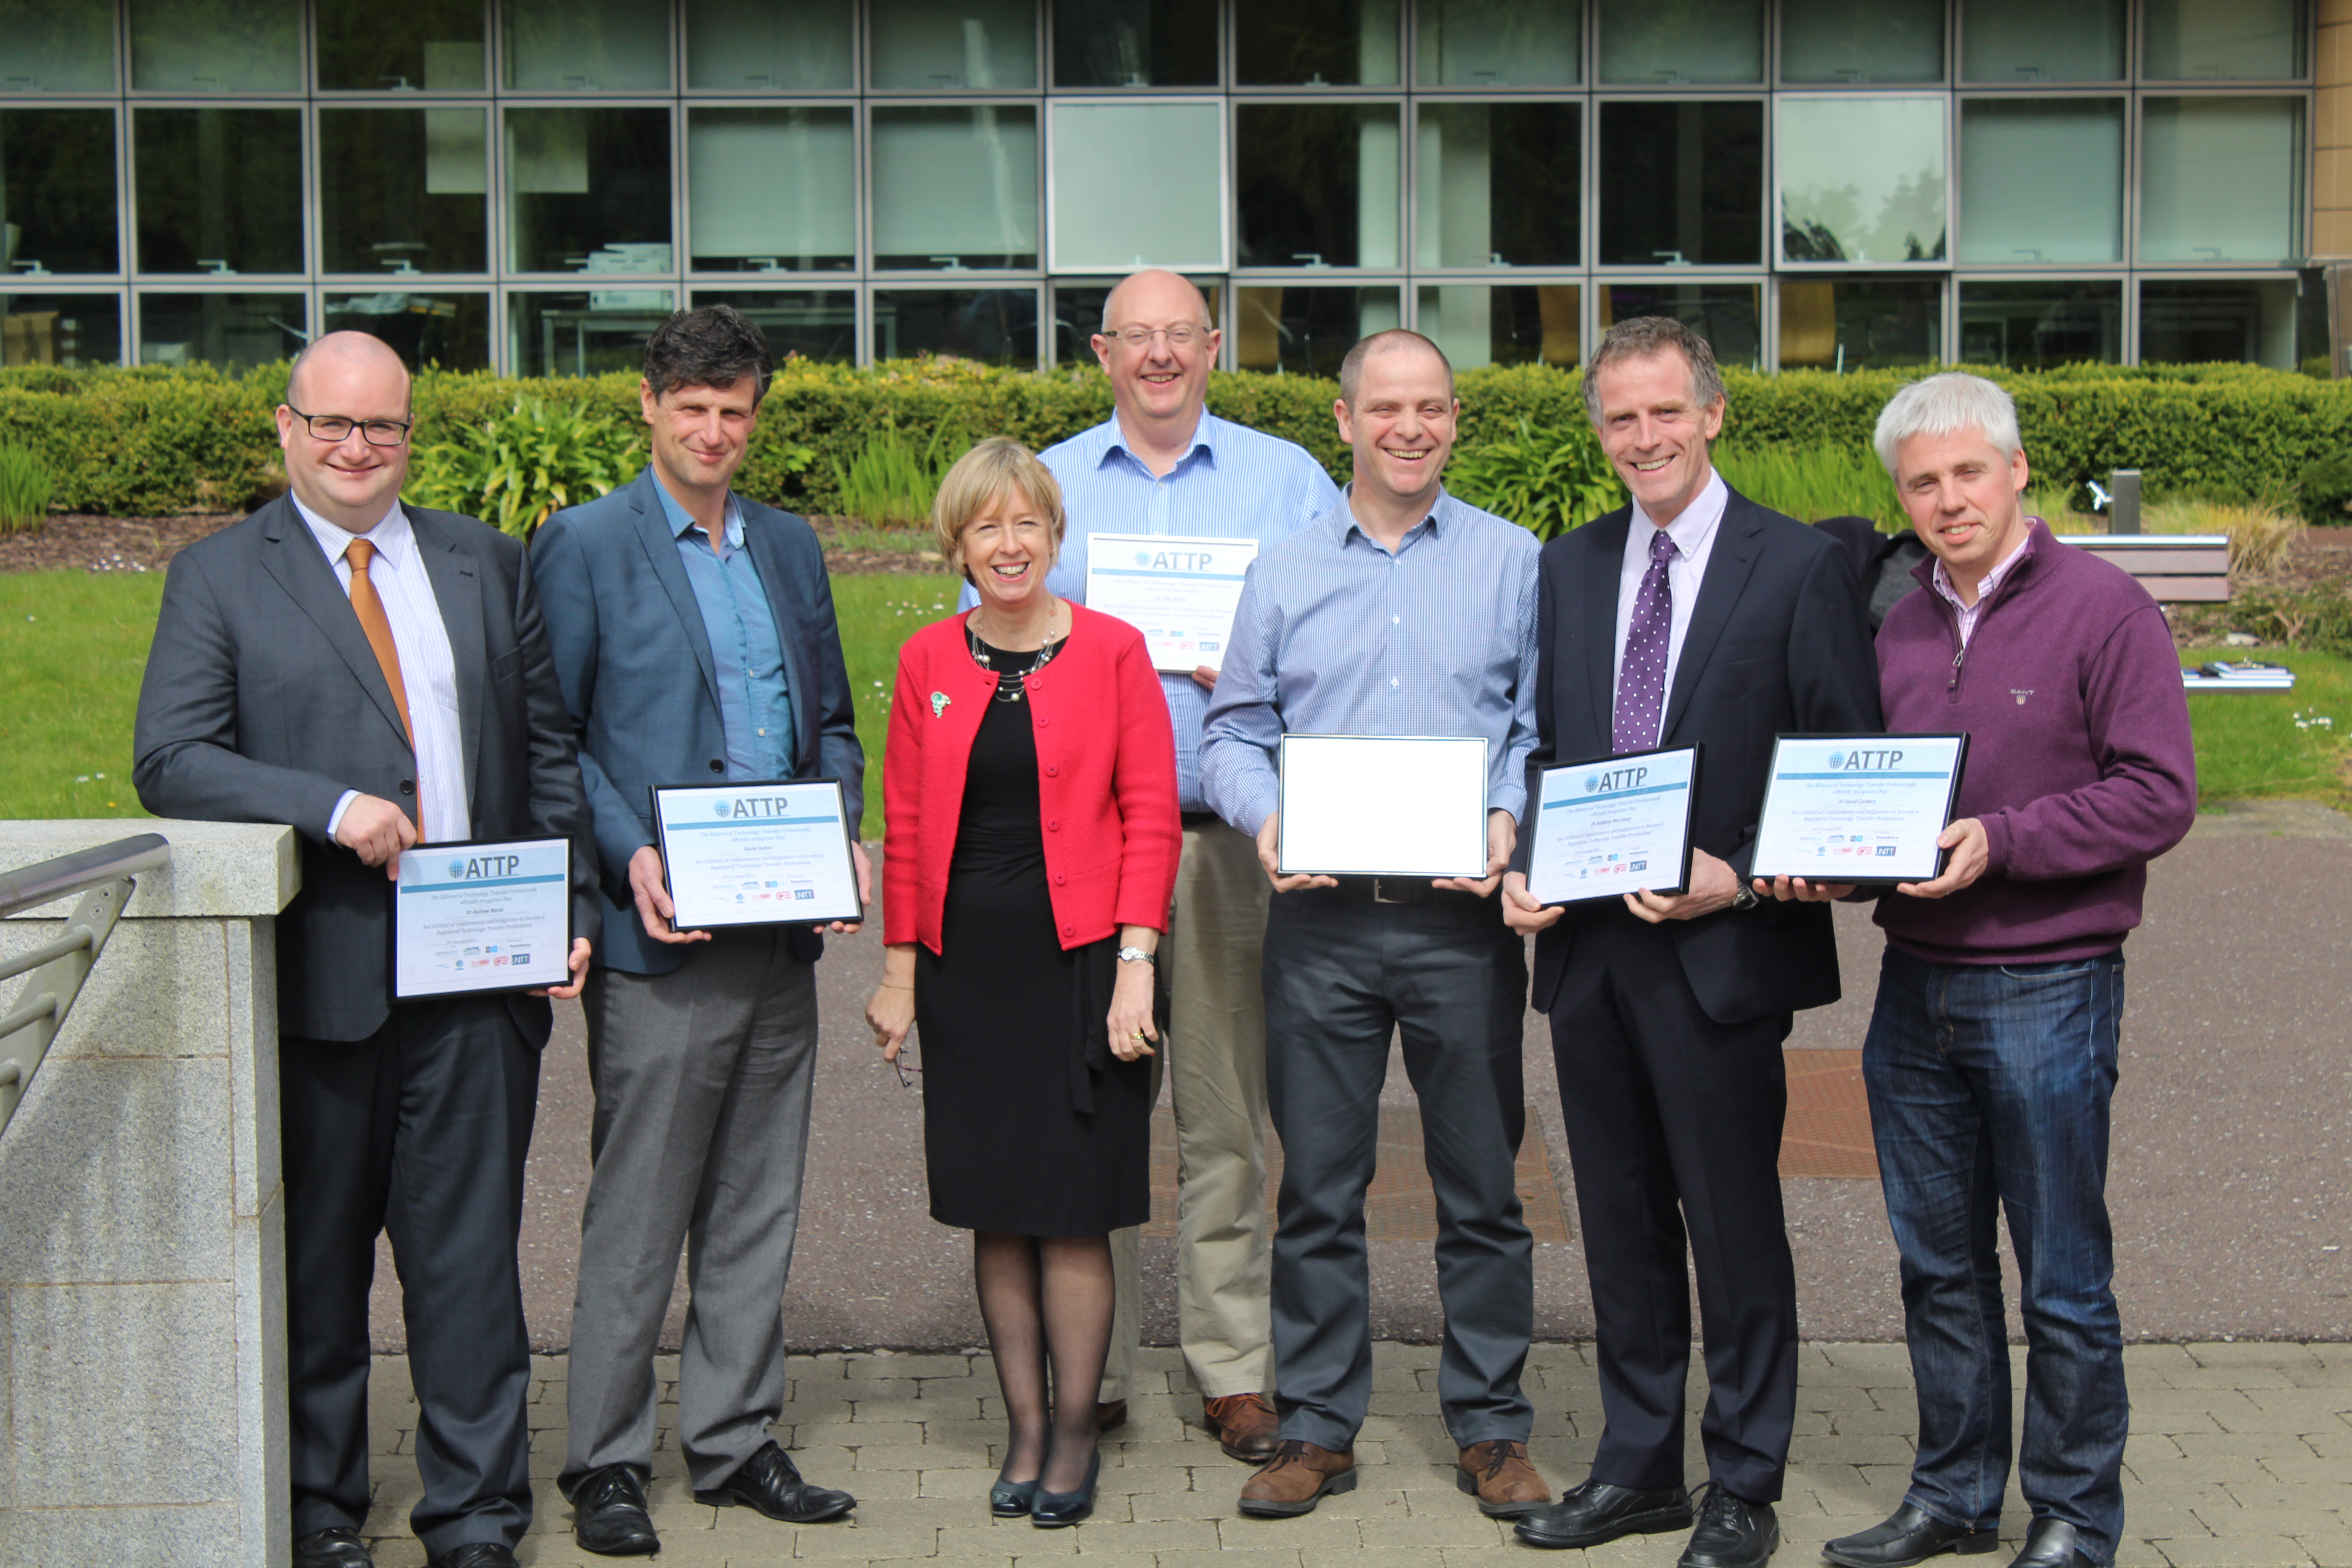 UCC congratulated by KTI Director, Dr Alison Campbell, for achieving international accreditation